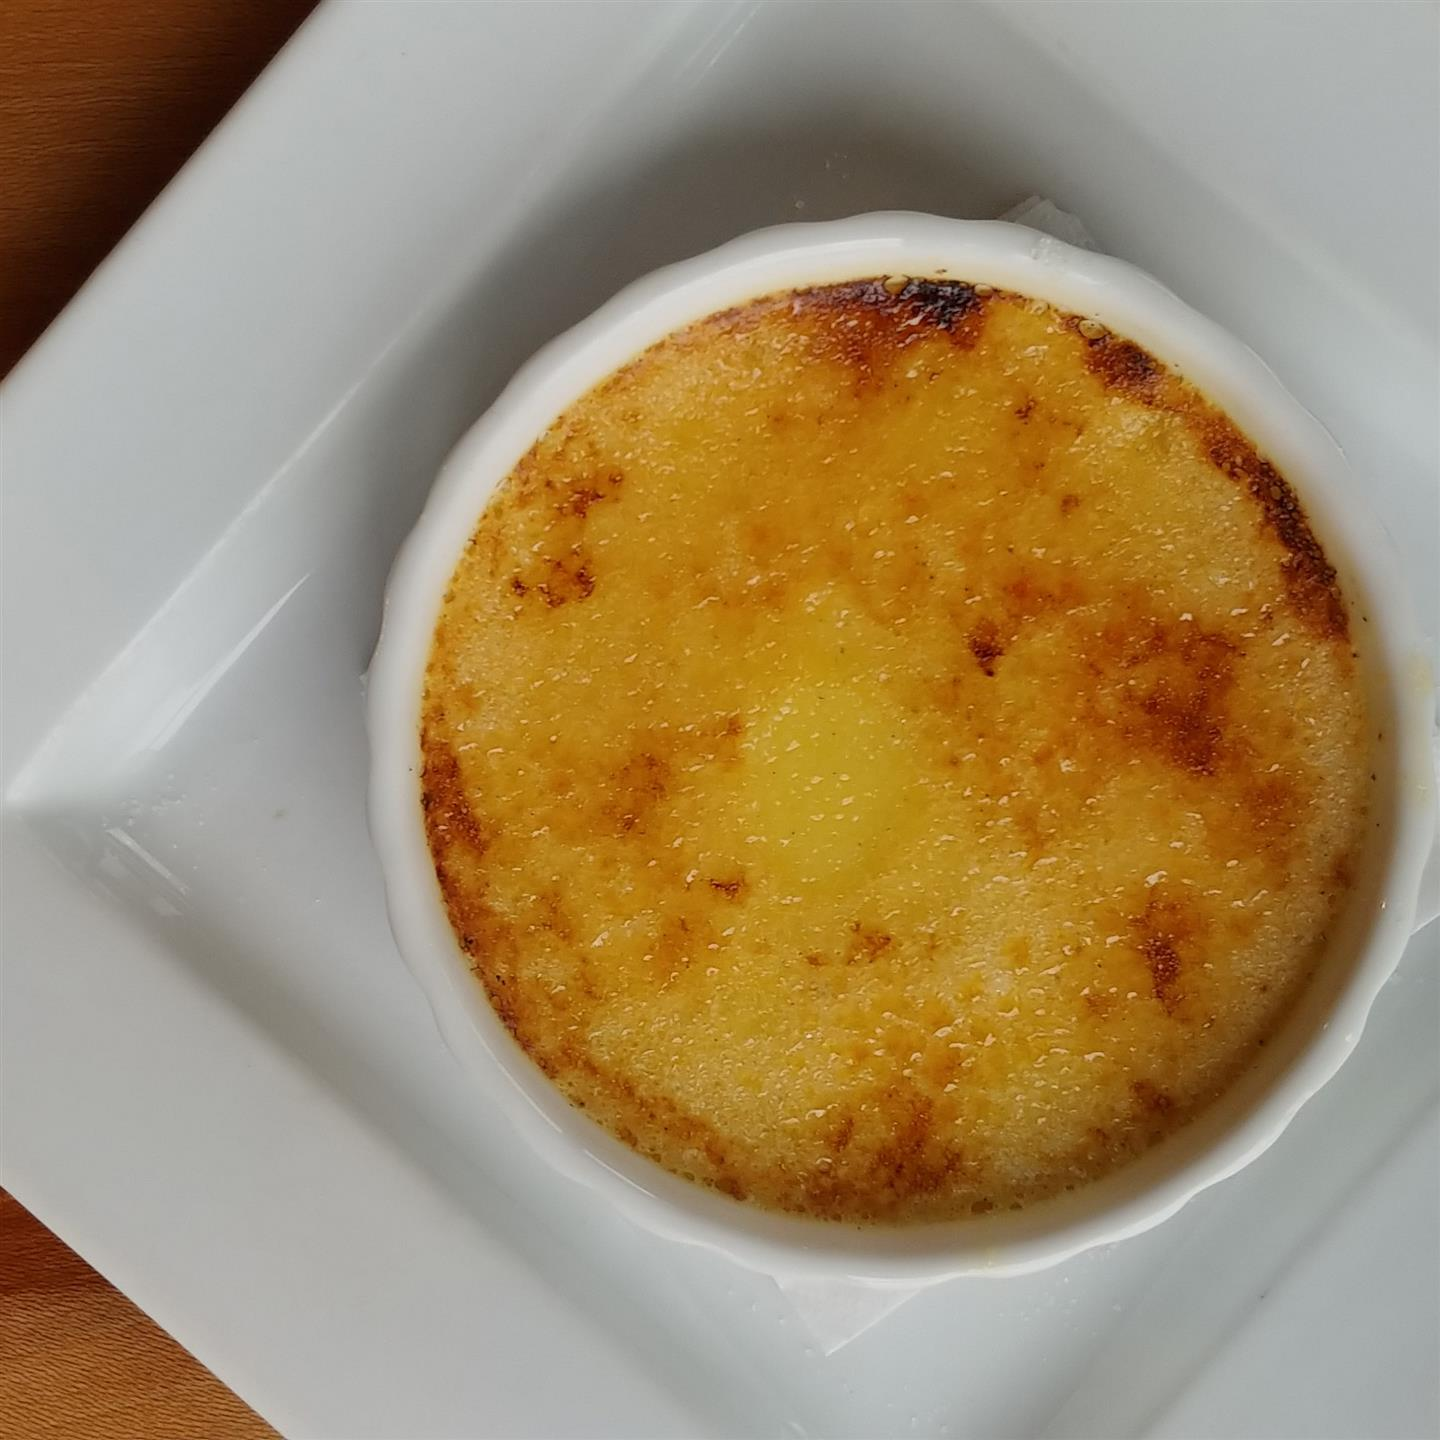 creme brulee in a bowl